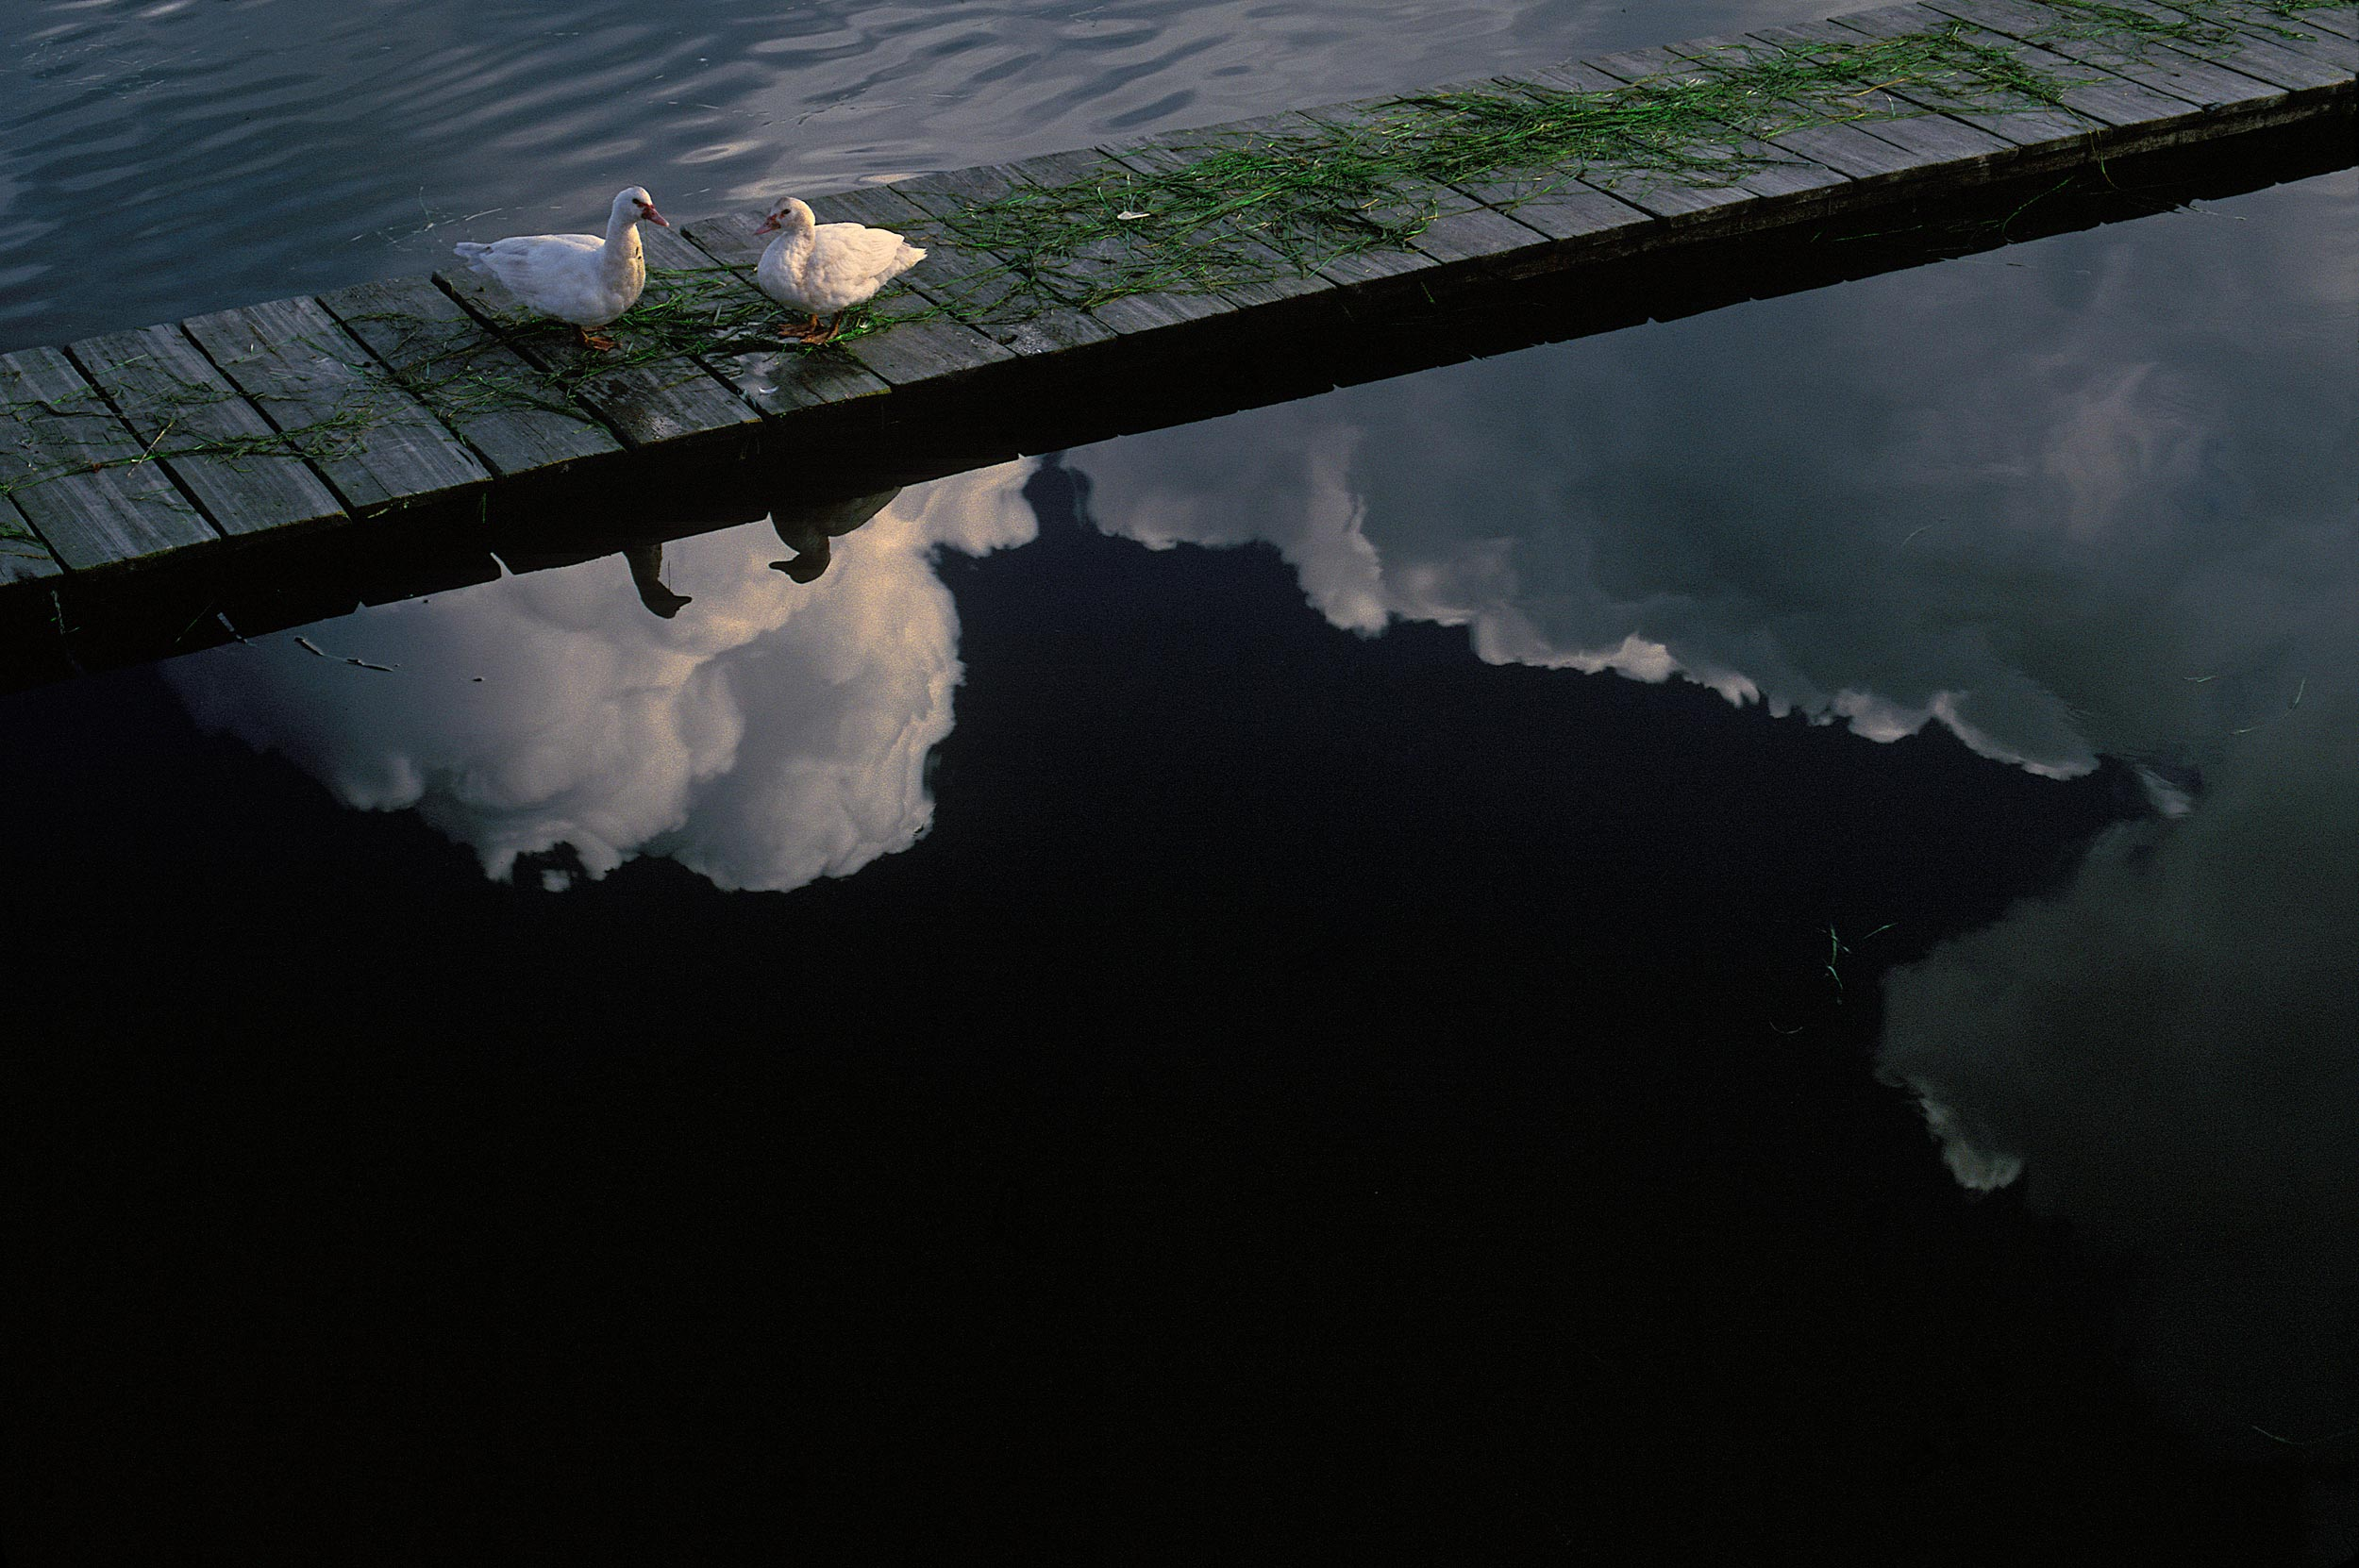 Ducks-with-cloud-reflectionPortugalweb